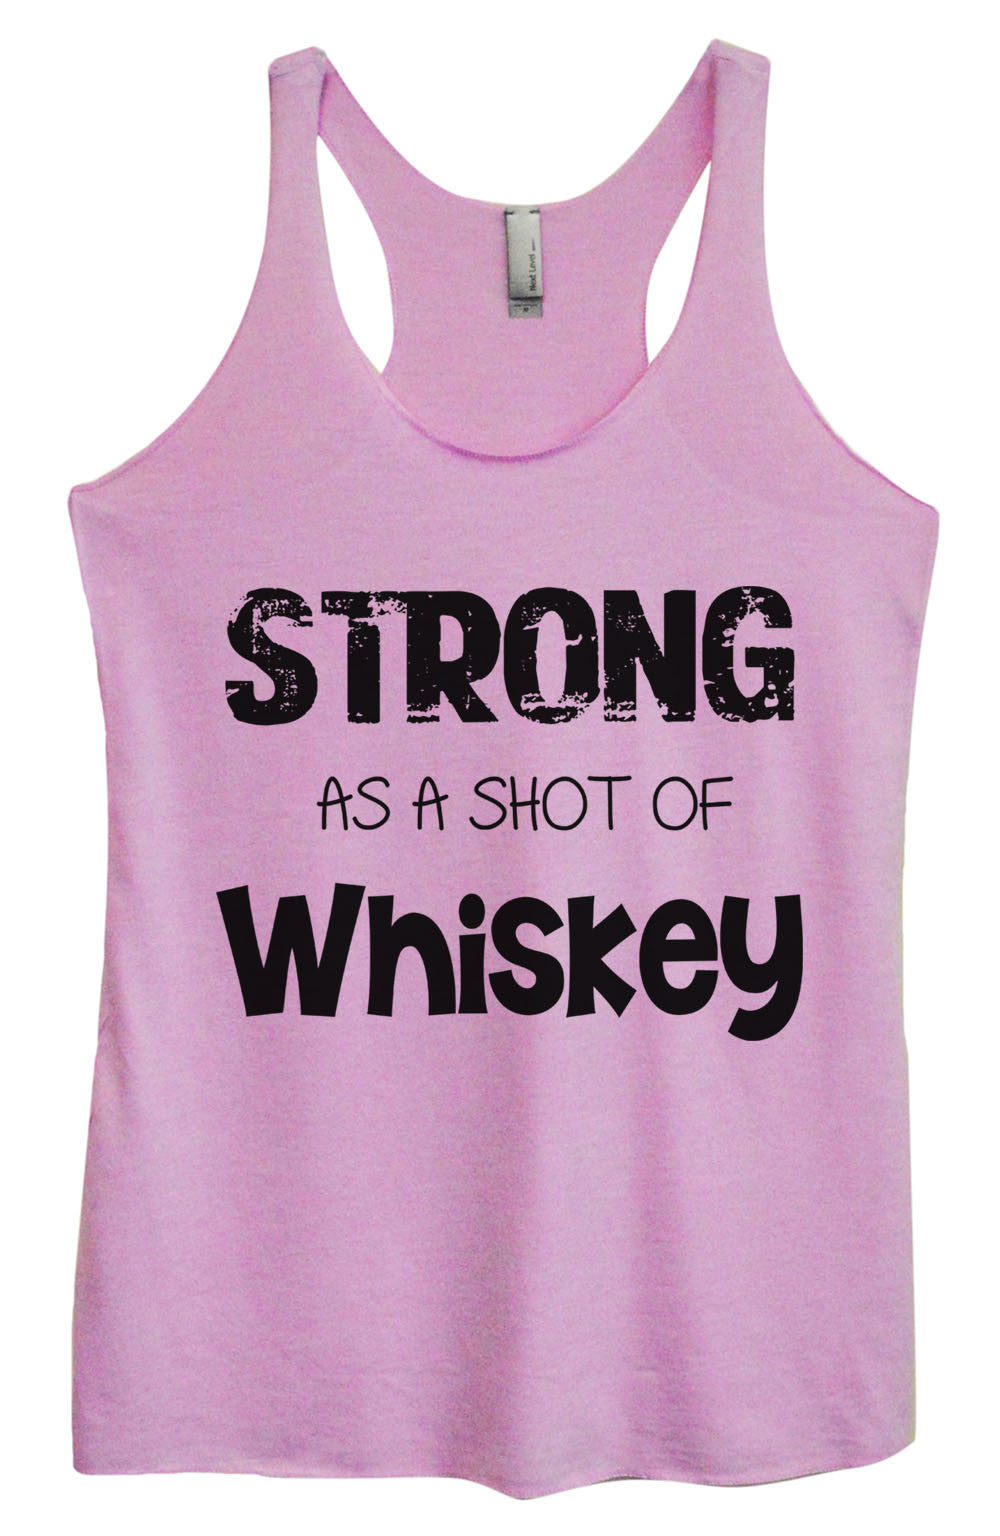 Womens Fashion Triblend Tank Top - Strong As A Shot Of Whiskey - Tri-717 - Funny Shirts Tank Tops Burnouts and Triblends  - 1